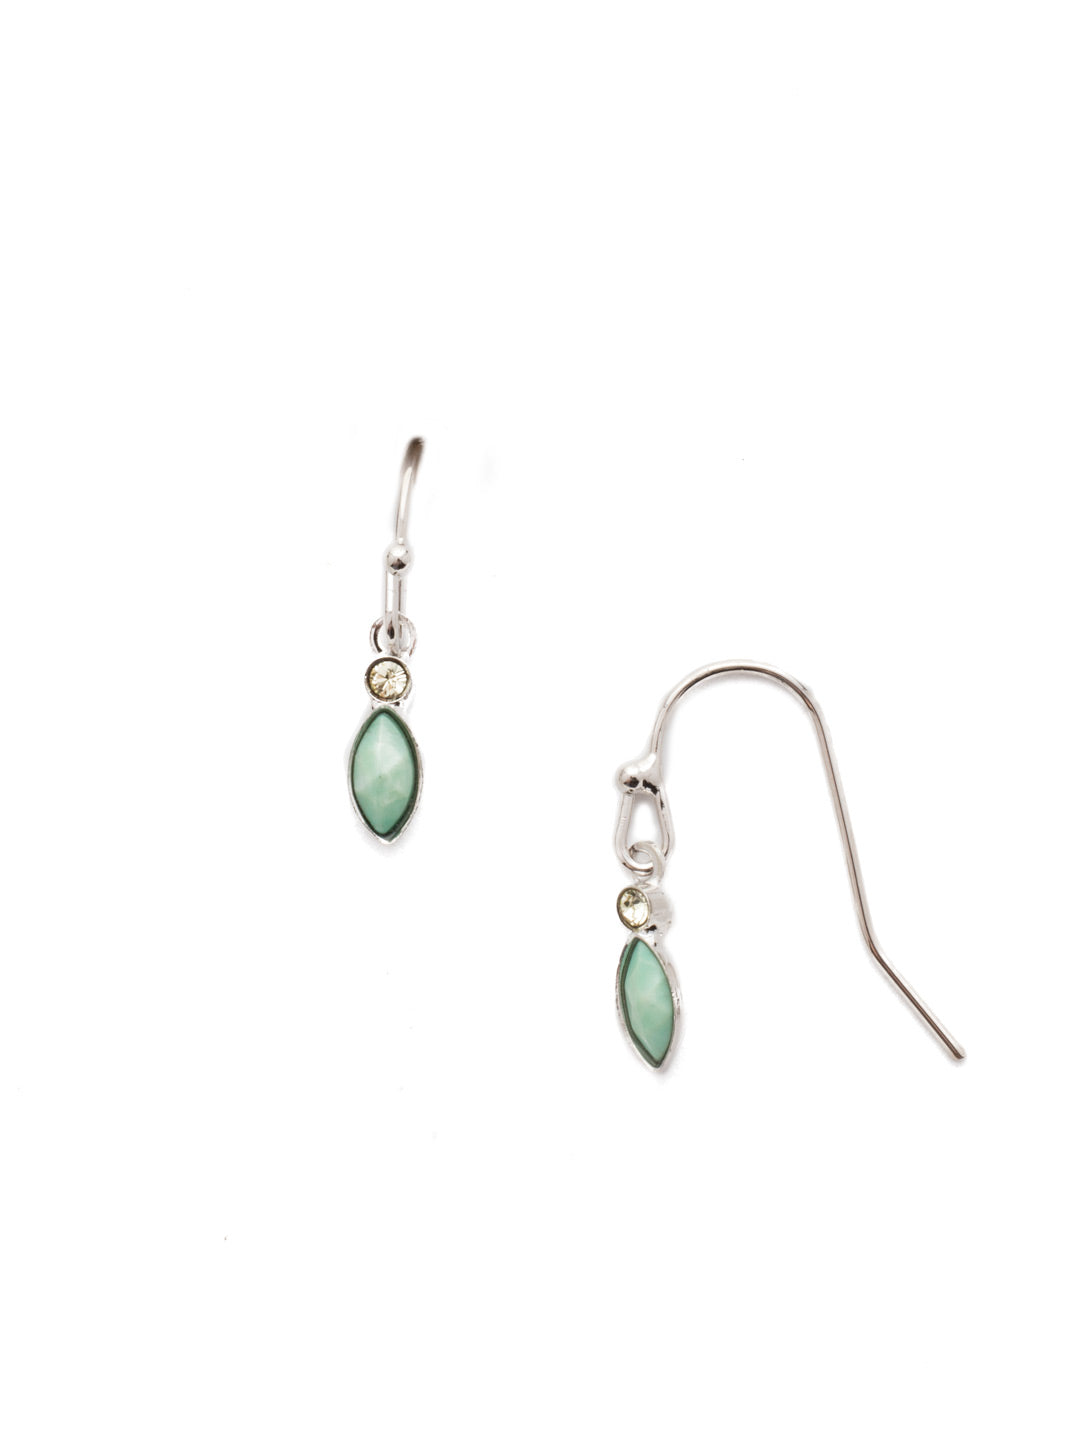 Seaglass French Wire Earring - EEH16RHTHT